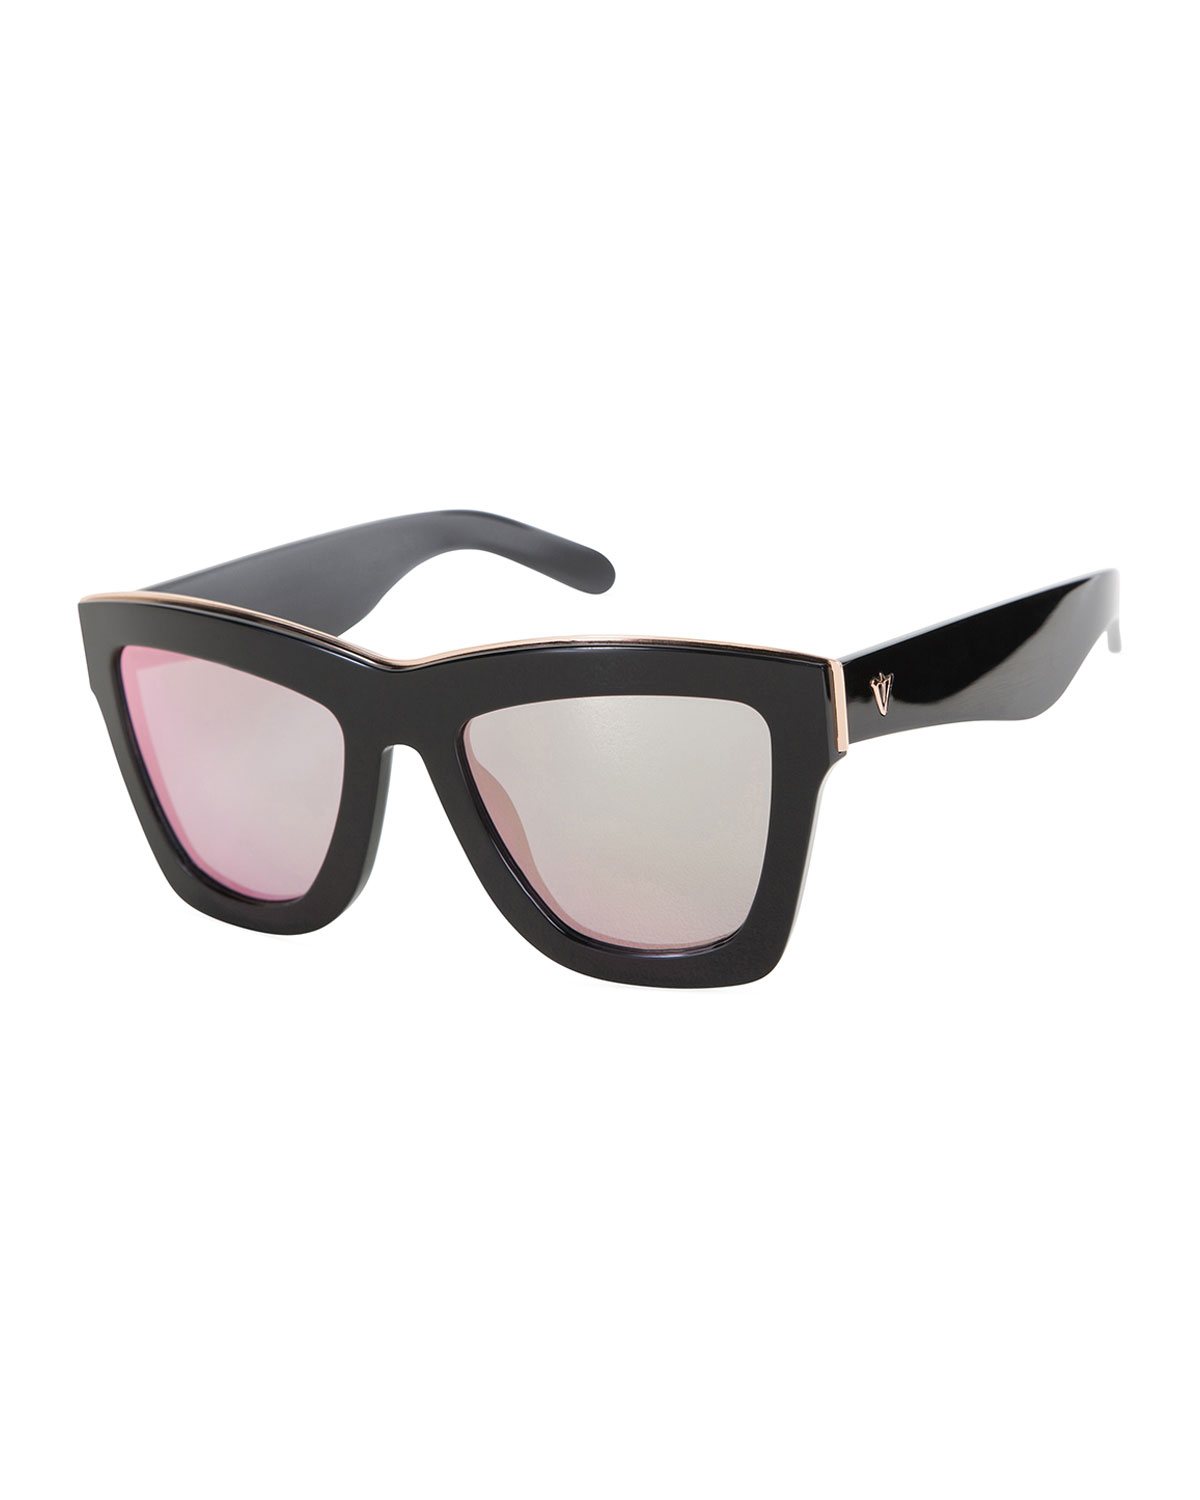 566a1a4caa Valley Eyewear DB Square Mirrored Sunglasses